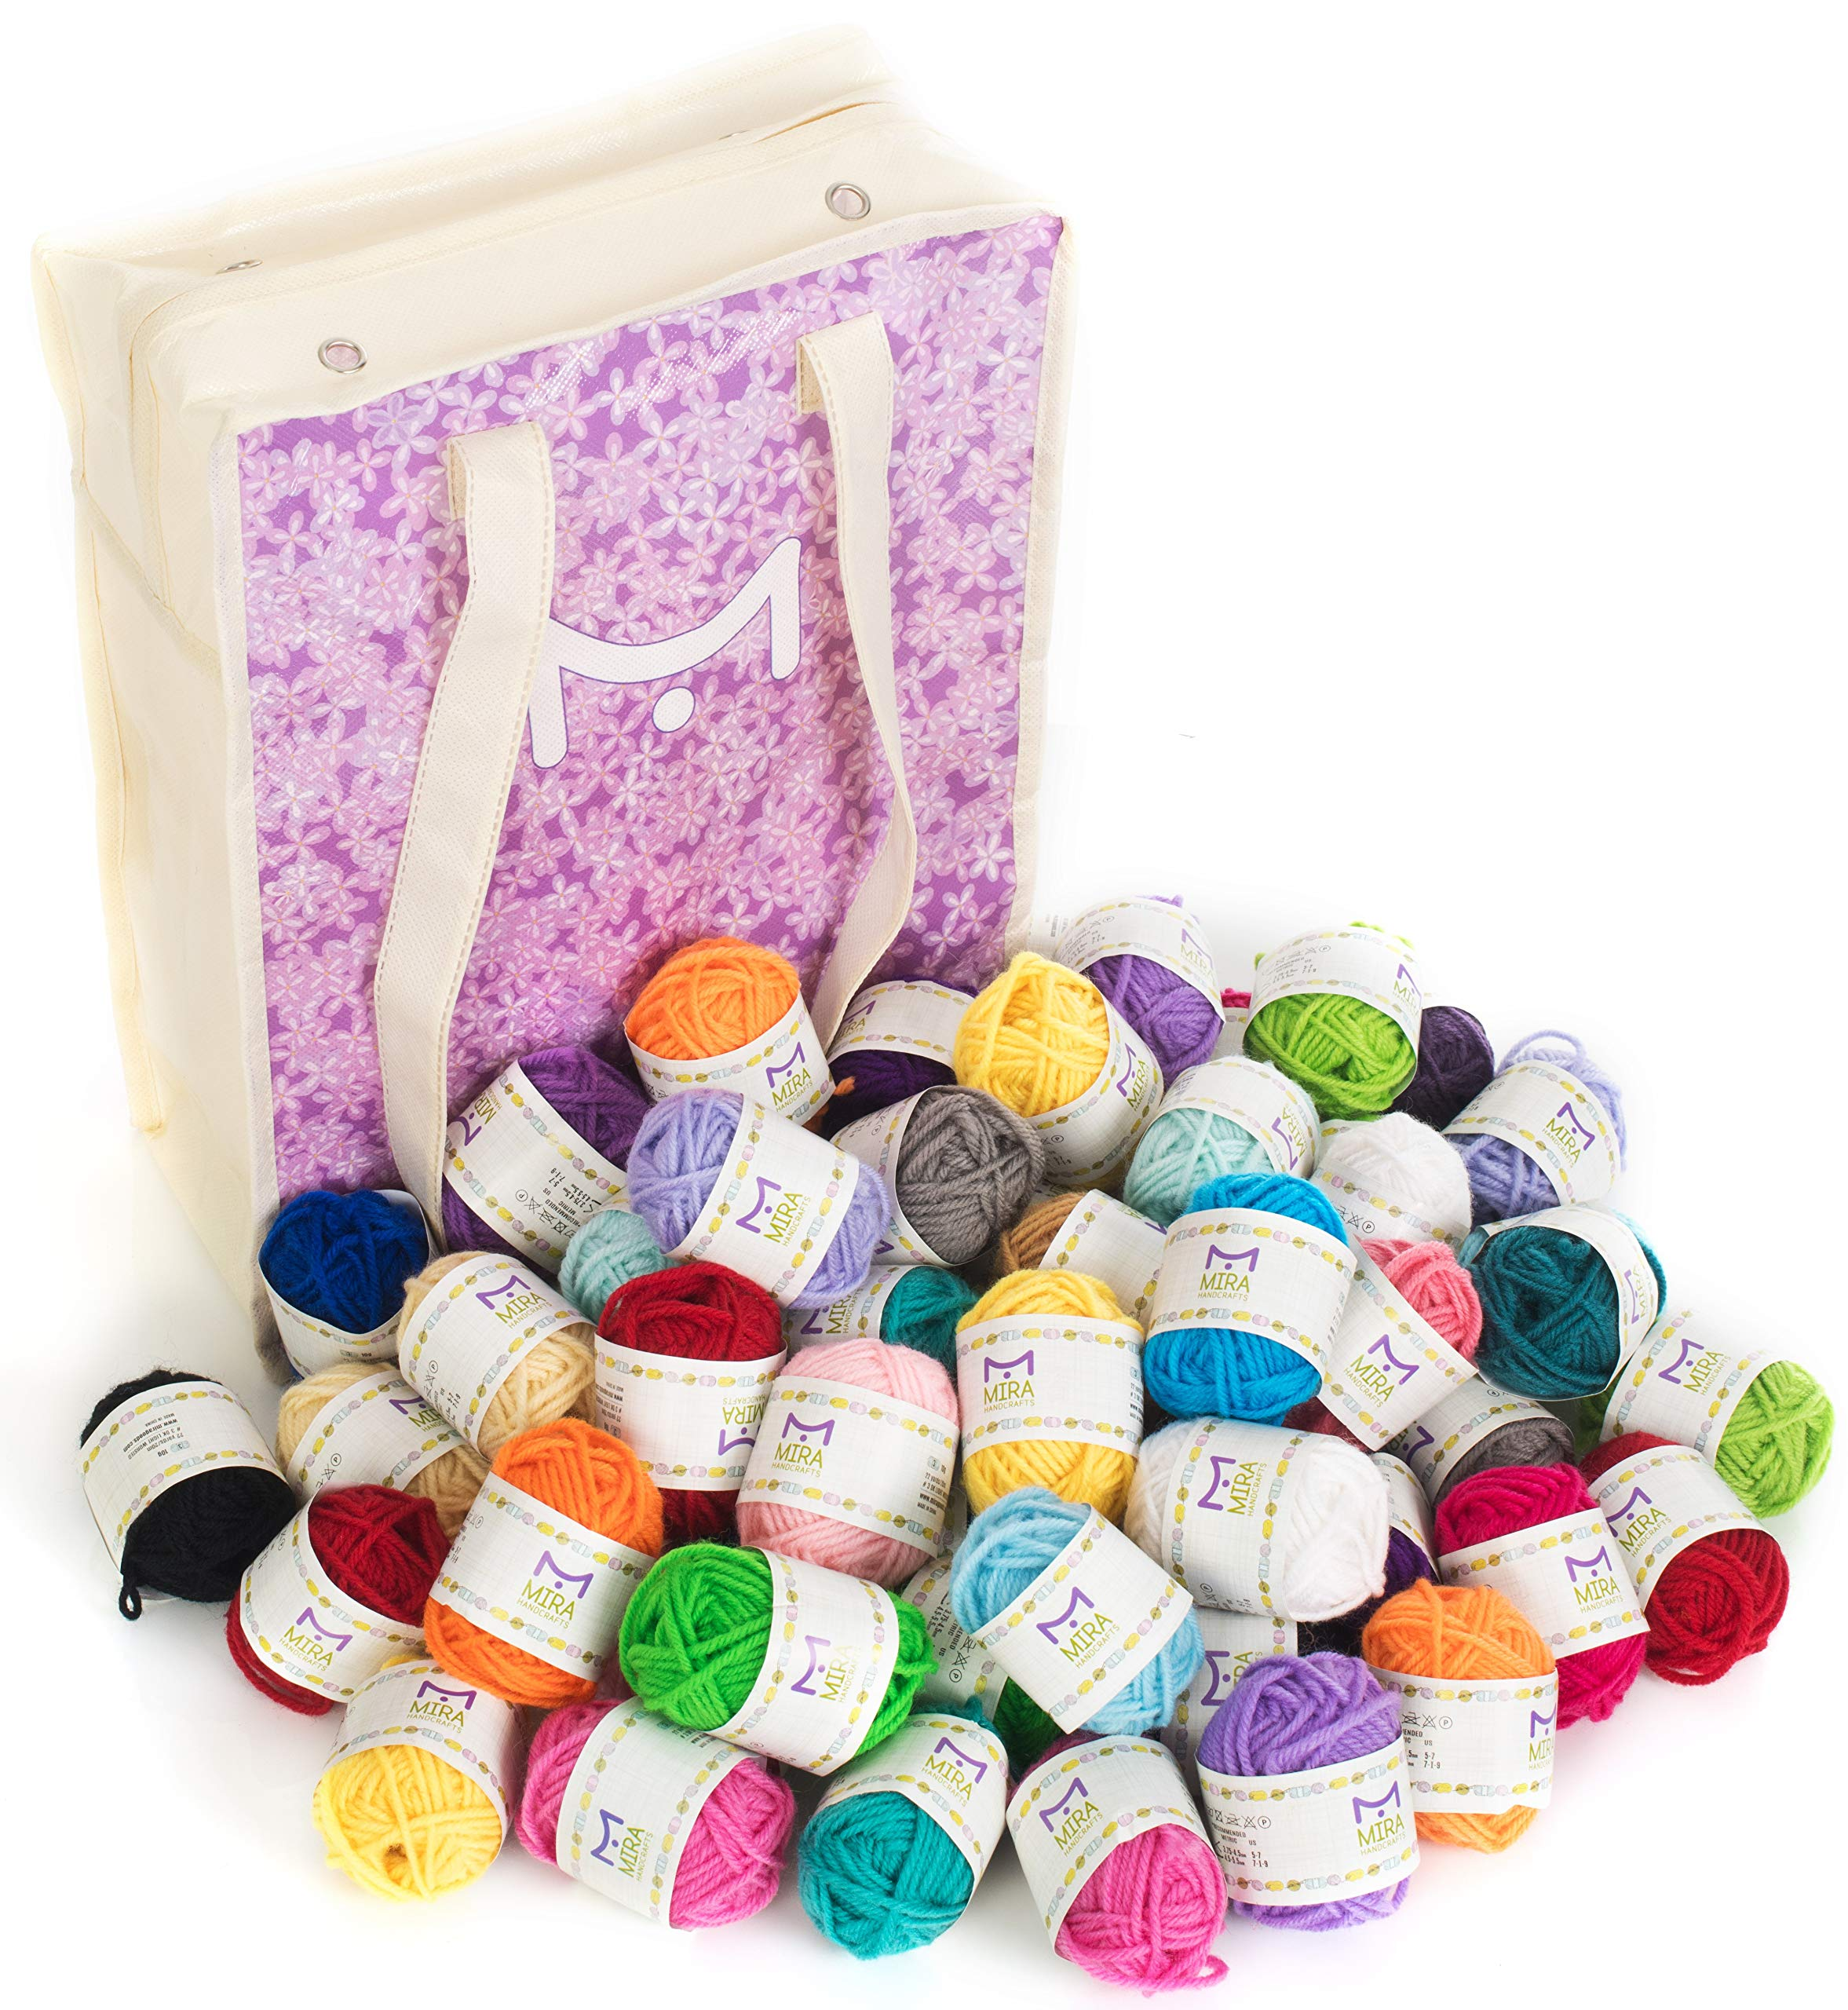 Mira Handcrafts 60 Yarn Bonbons - Total of 1312 Yard Acrylic Yarn for Knitting and Crochet - Yarn Bag for Storage and Accessories Included with Each Pack by Mira HandCrafts (Image #5)